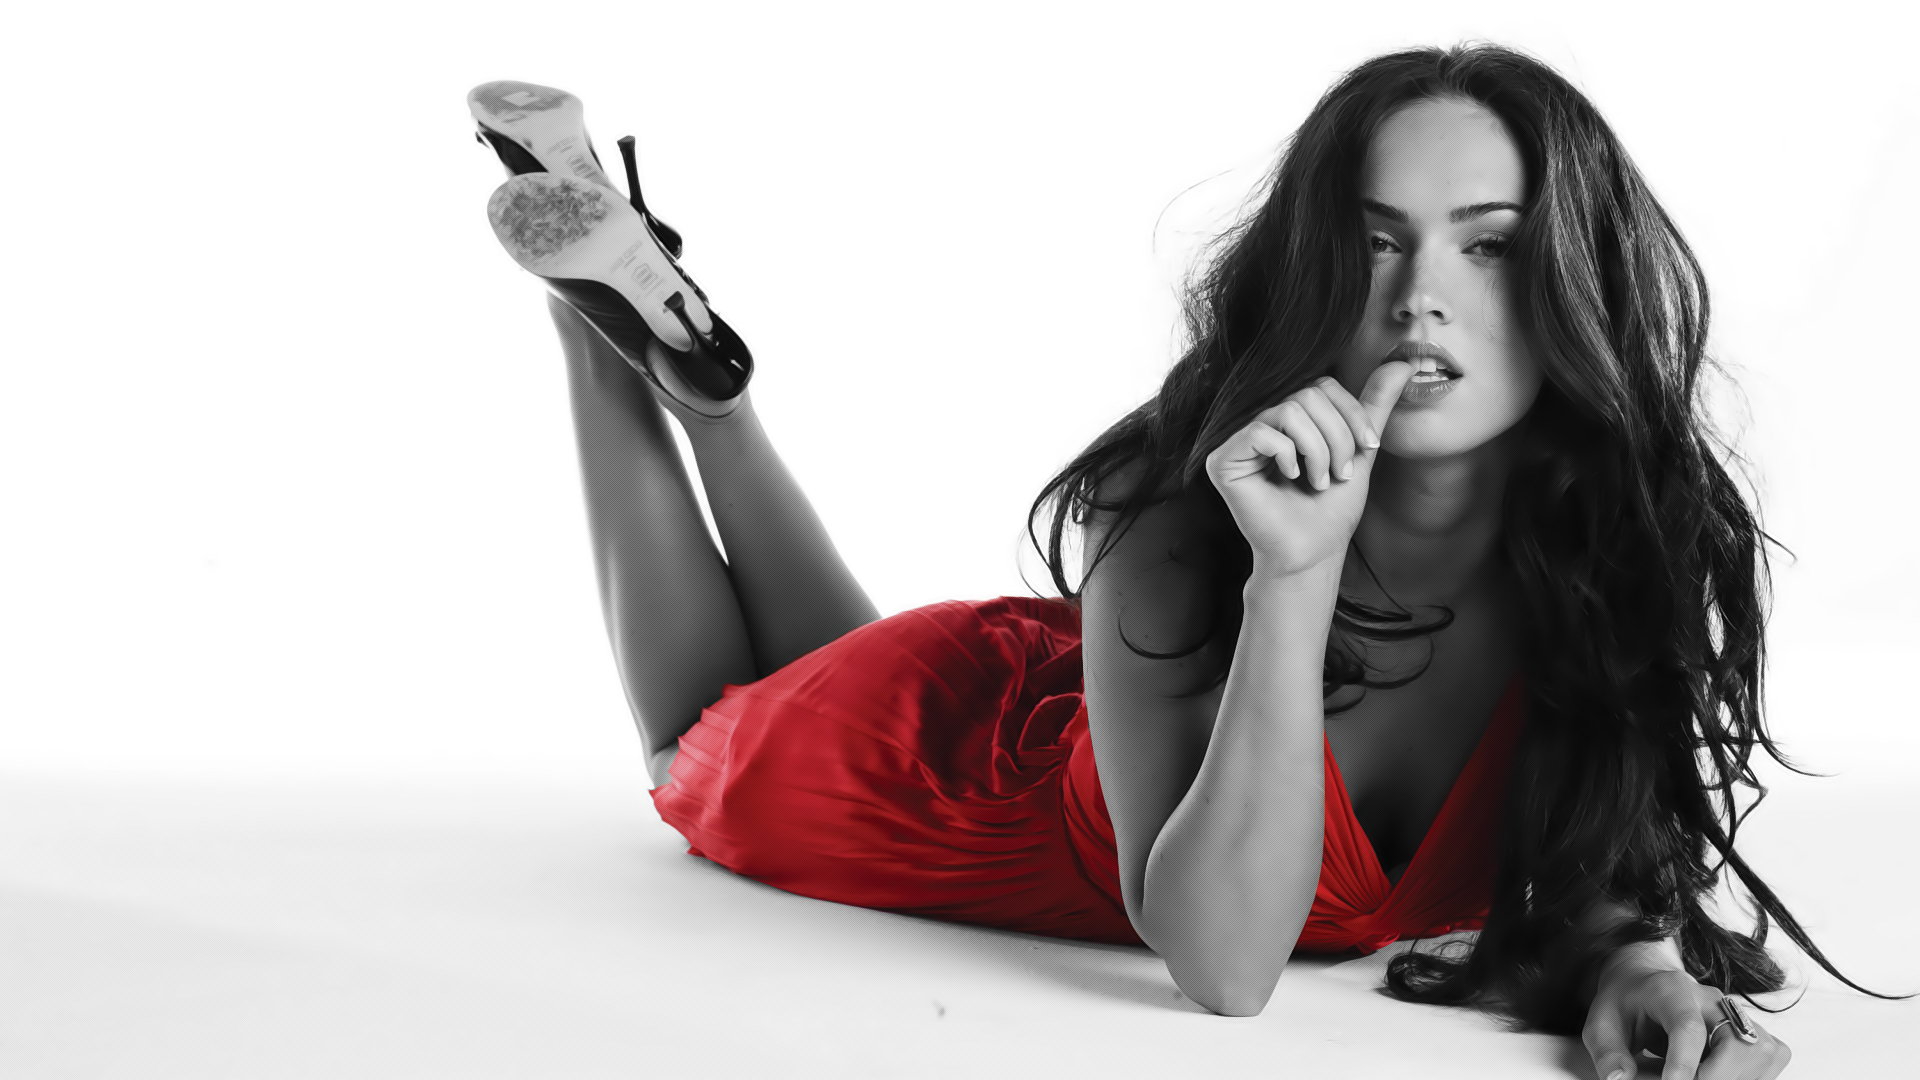 megan-fox-every-girl-video